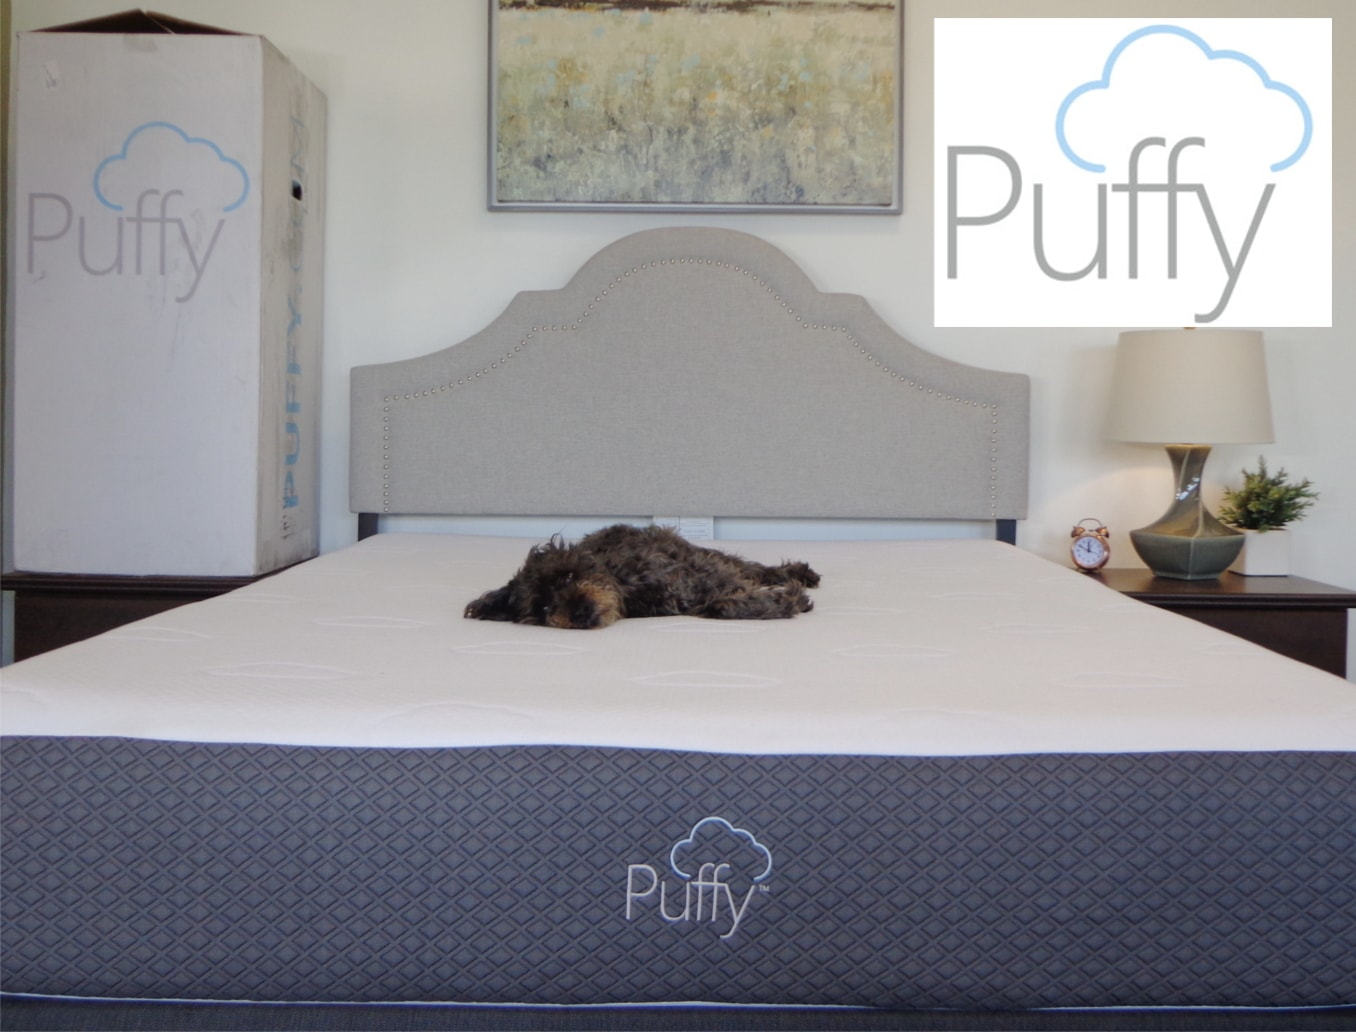 Casper King Mattress Review Puffy Vs Casper Mattress Review Price Where To Buy Coupons